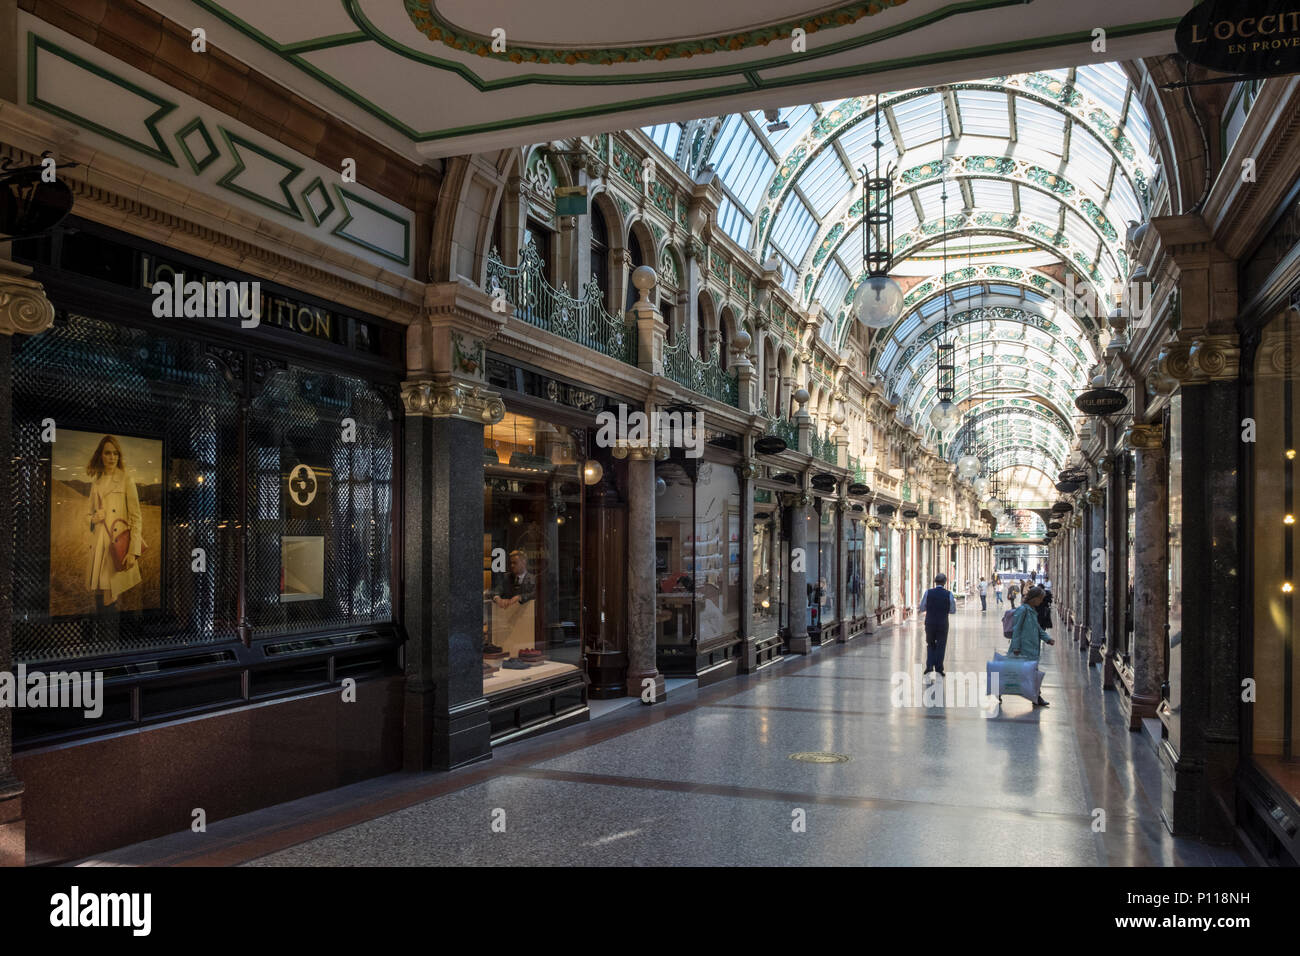 County Arcade in the Victoria Quarter, Leeds, West Yorkshire, England, UK - Stock Image